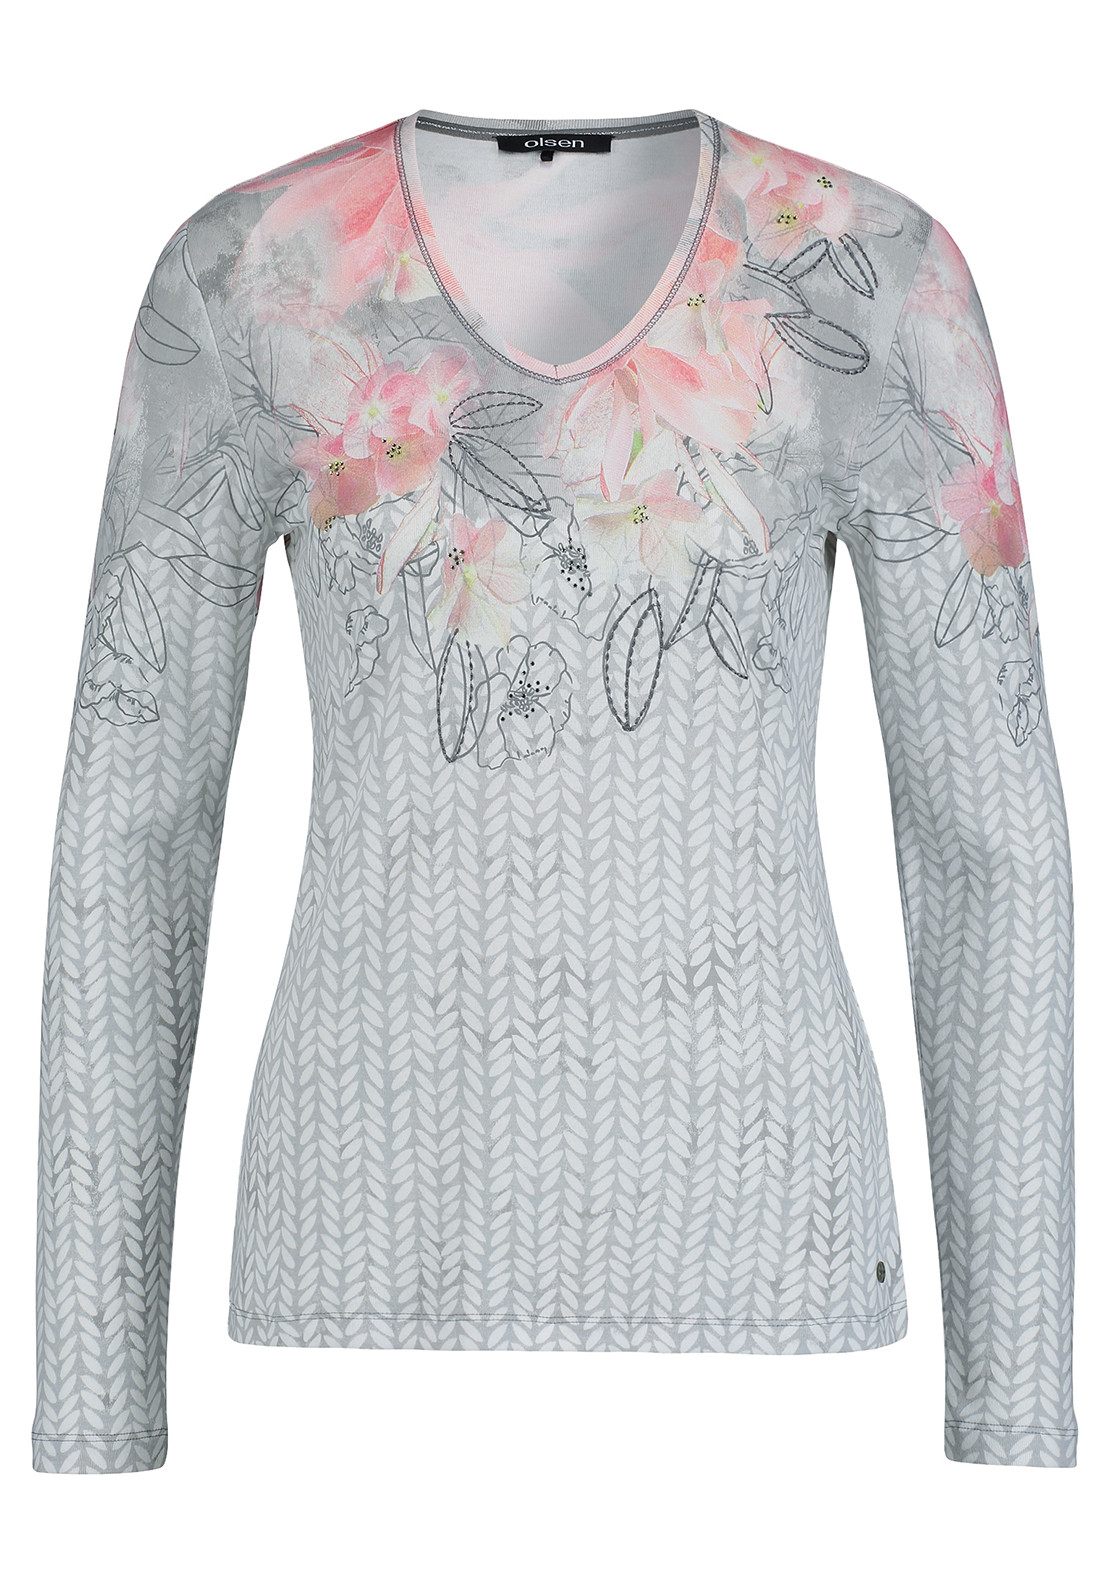 Olsen Leaf & Floral Print Top, Grey Multi